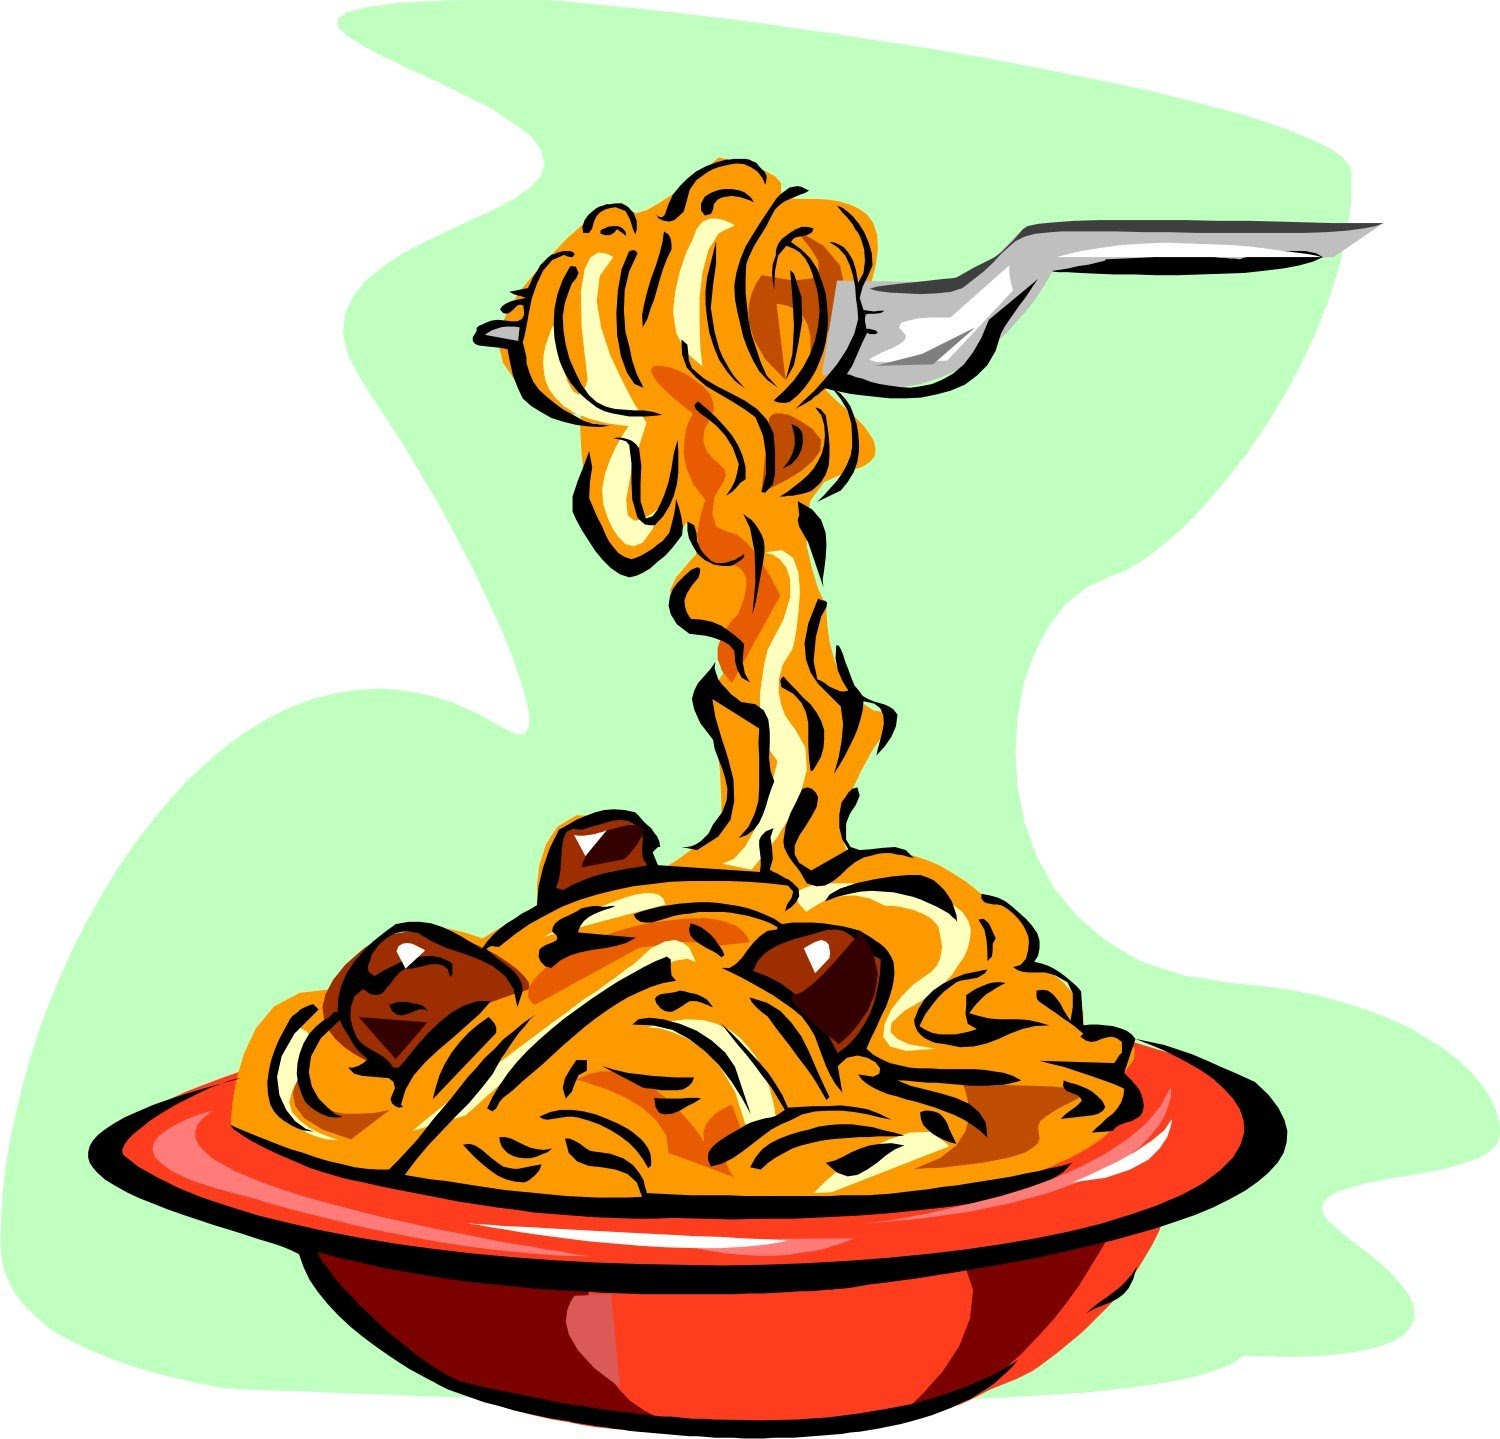 Pasta clipart. Spaghetti the cliparts databases